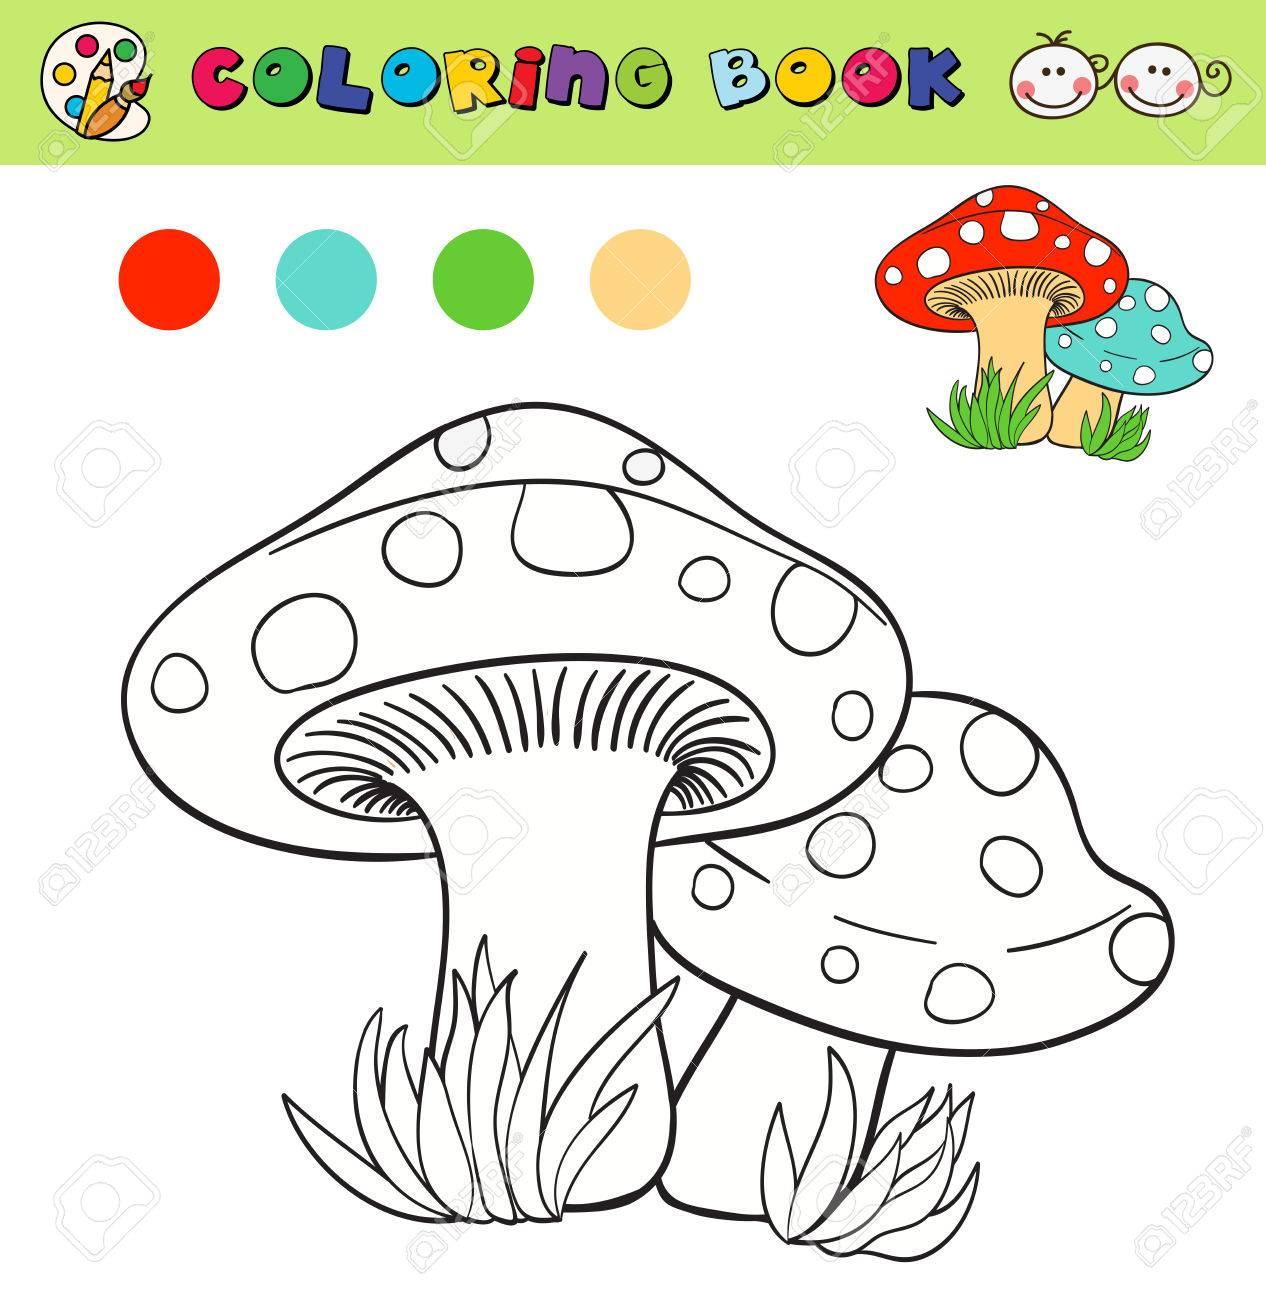 Coloring Book Page Template With Mushrooms In Grass Color Samples Vector Illustraton Stock